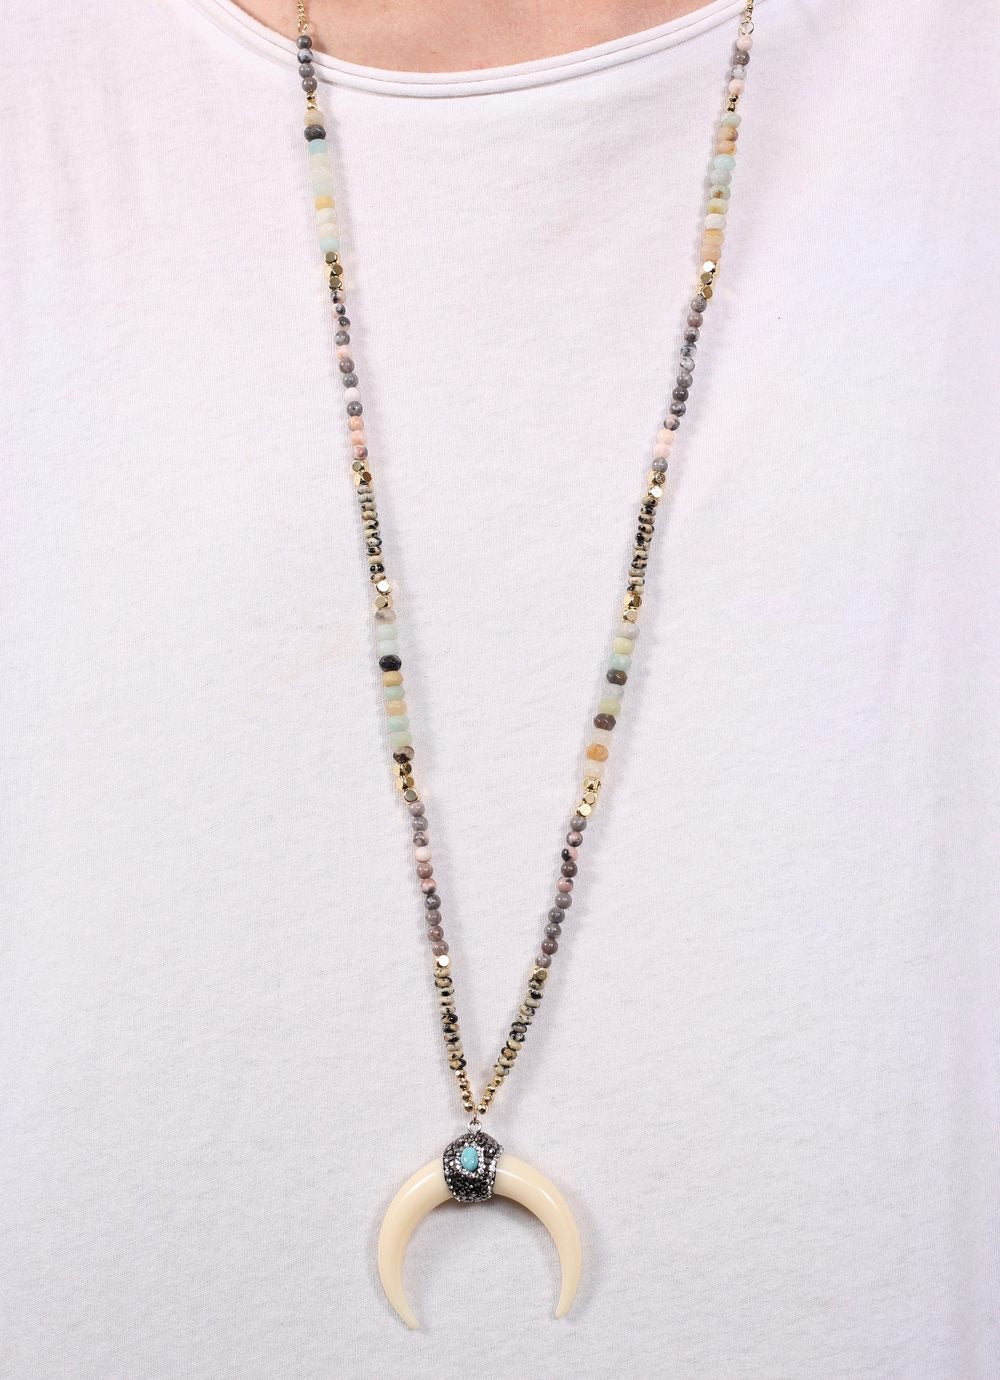 Boho Natural Beaded Necklace